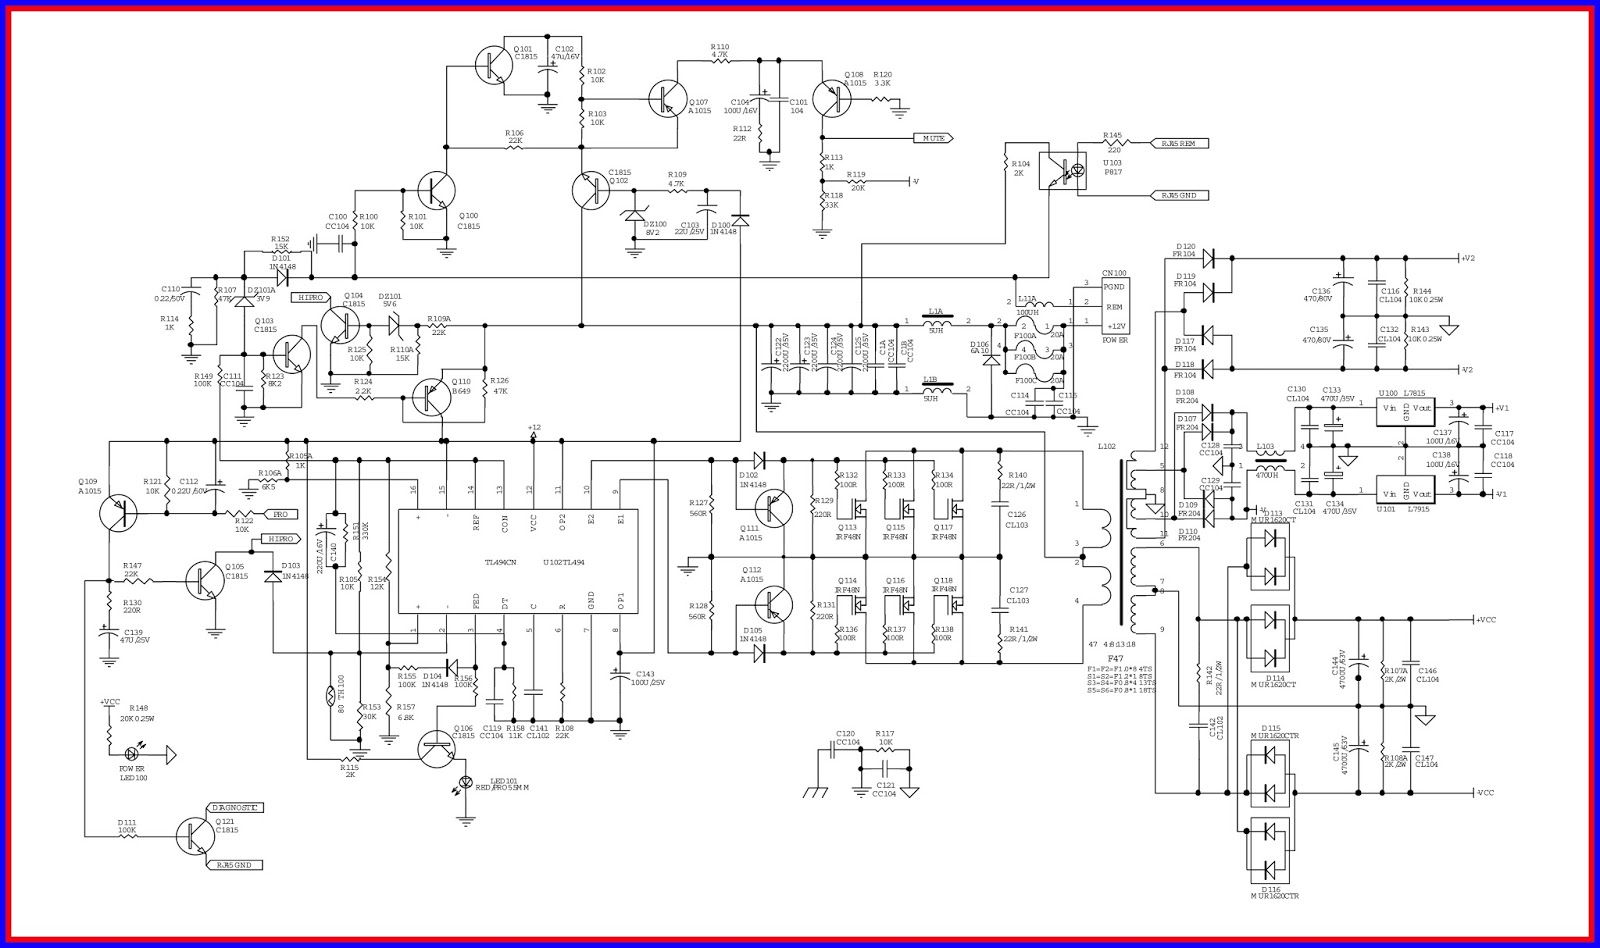 Carrier Infinity System Wiring Diagram Profibus Dp 1600a 29 Images